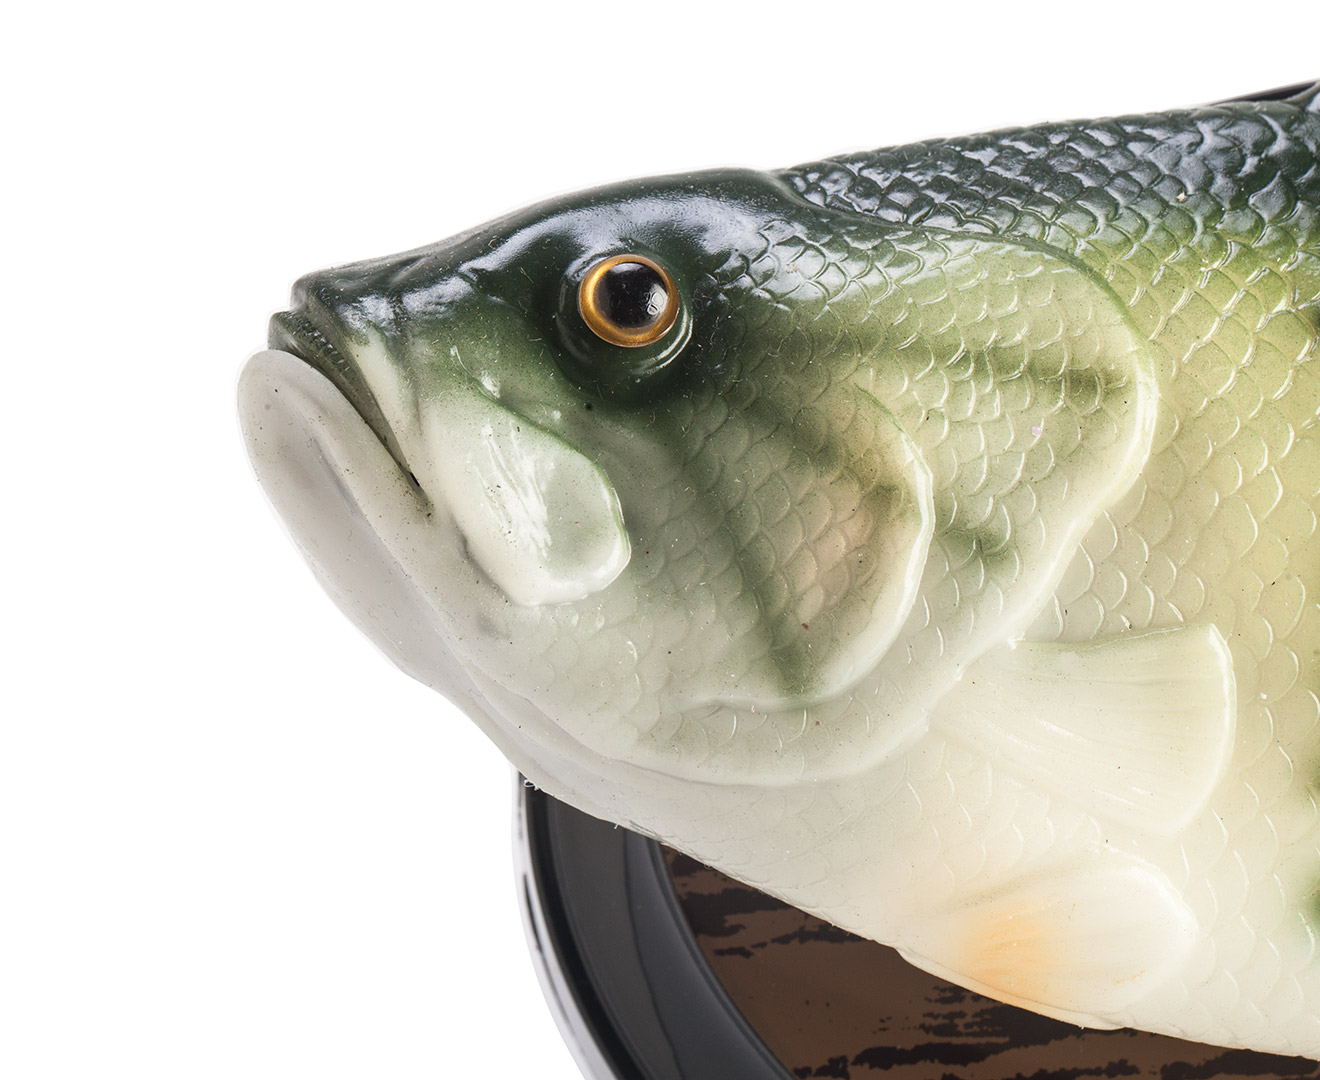 Big mouth billy bass singing fish great daily deals at for Big mouth fish